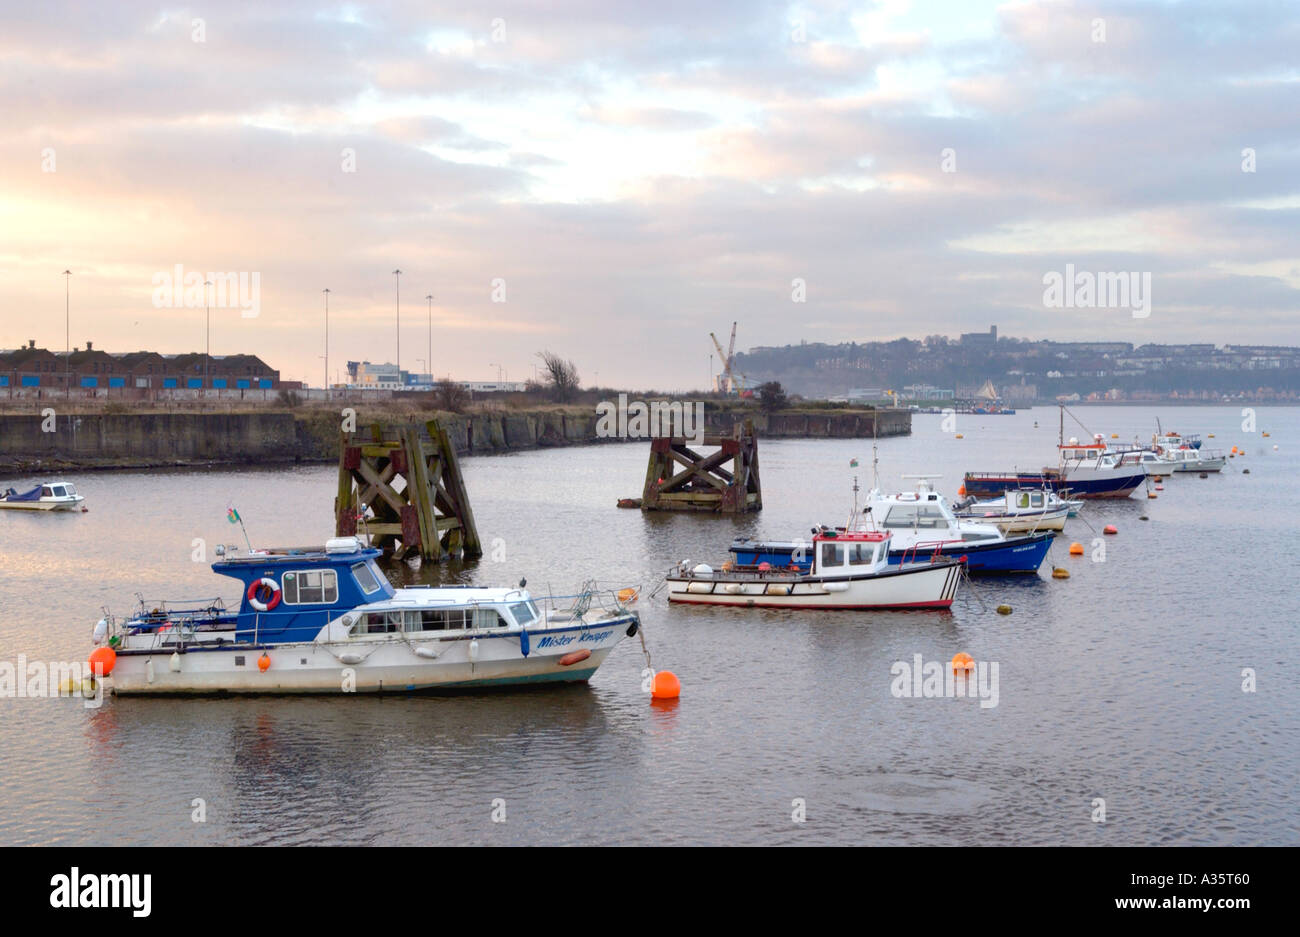 Inshore angling boats at moorings in the early morning light Cardiff Bay South Wales UK - Stock Image